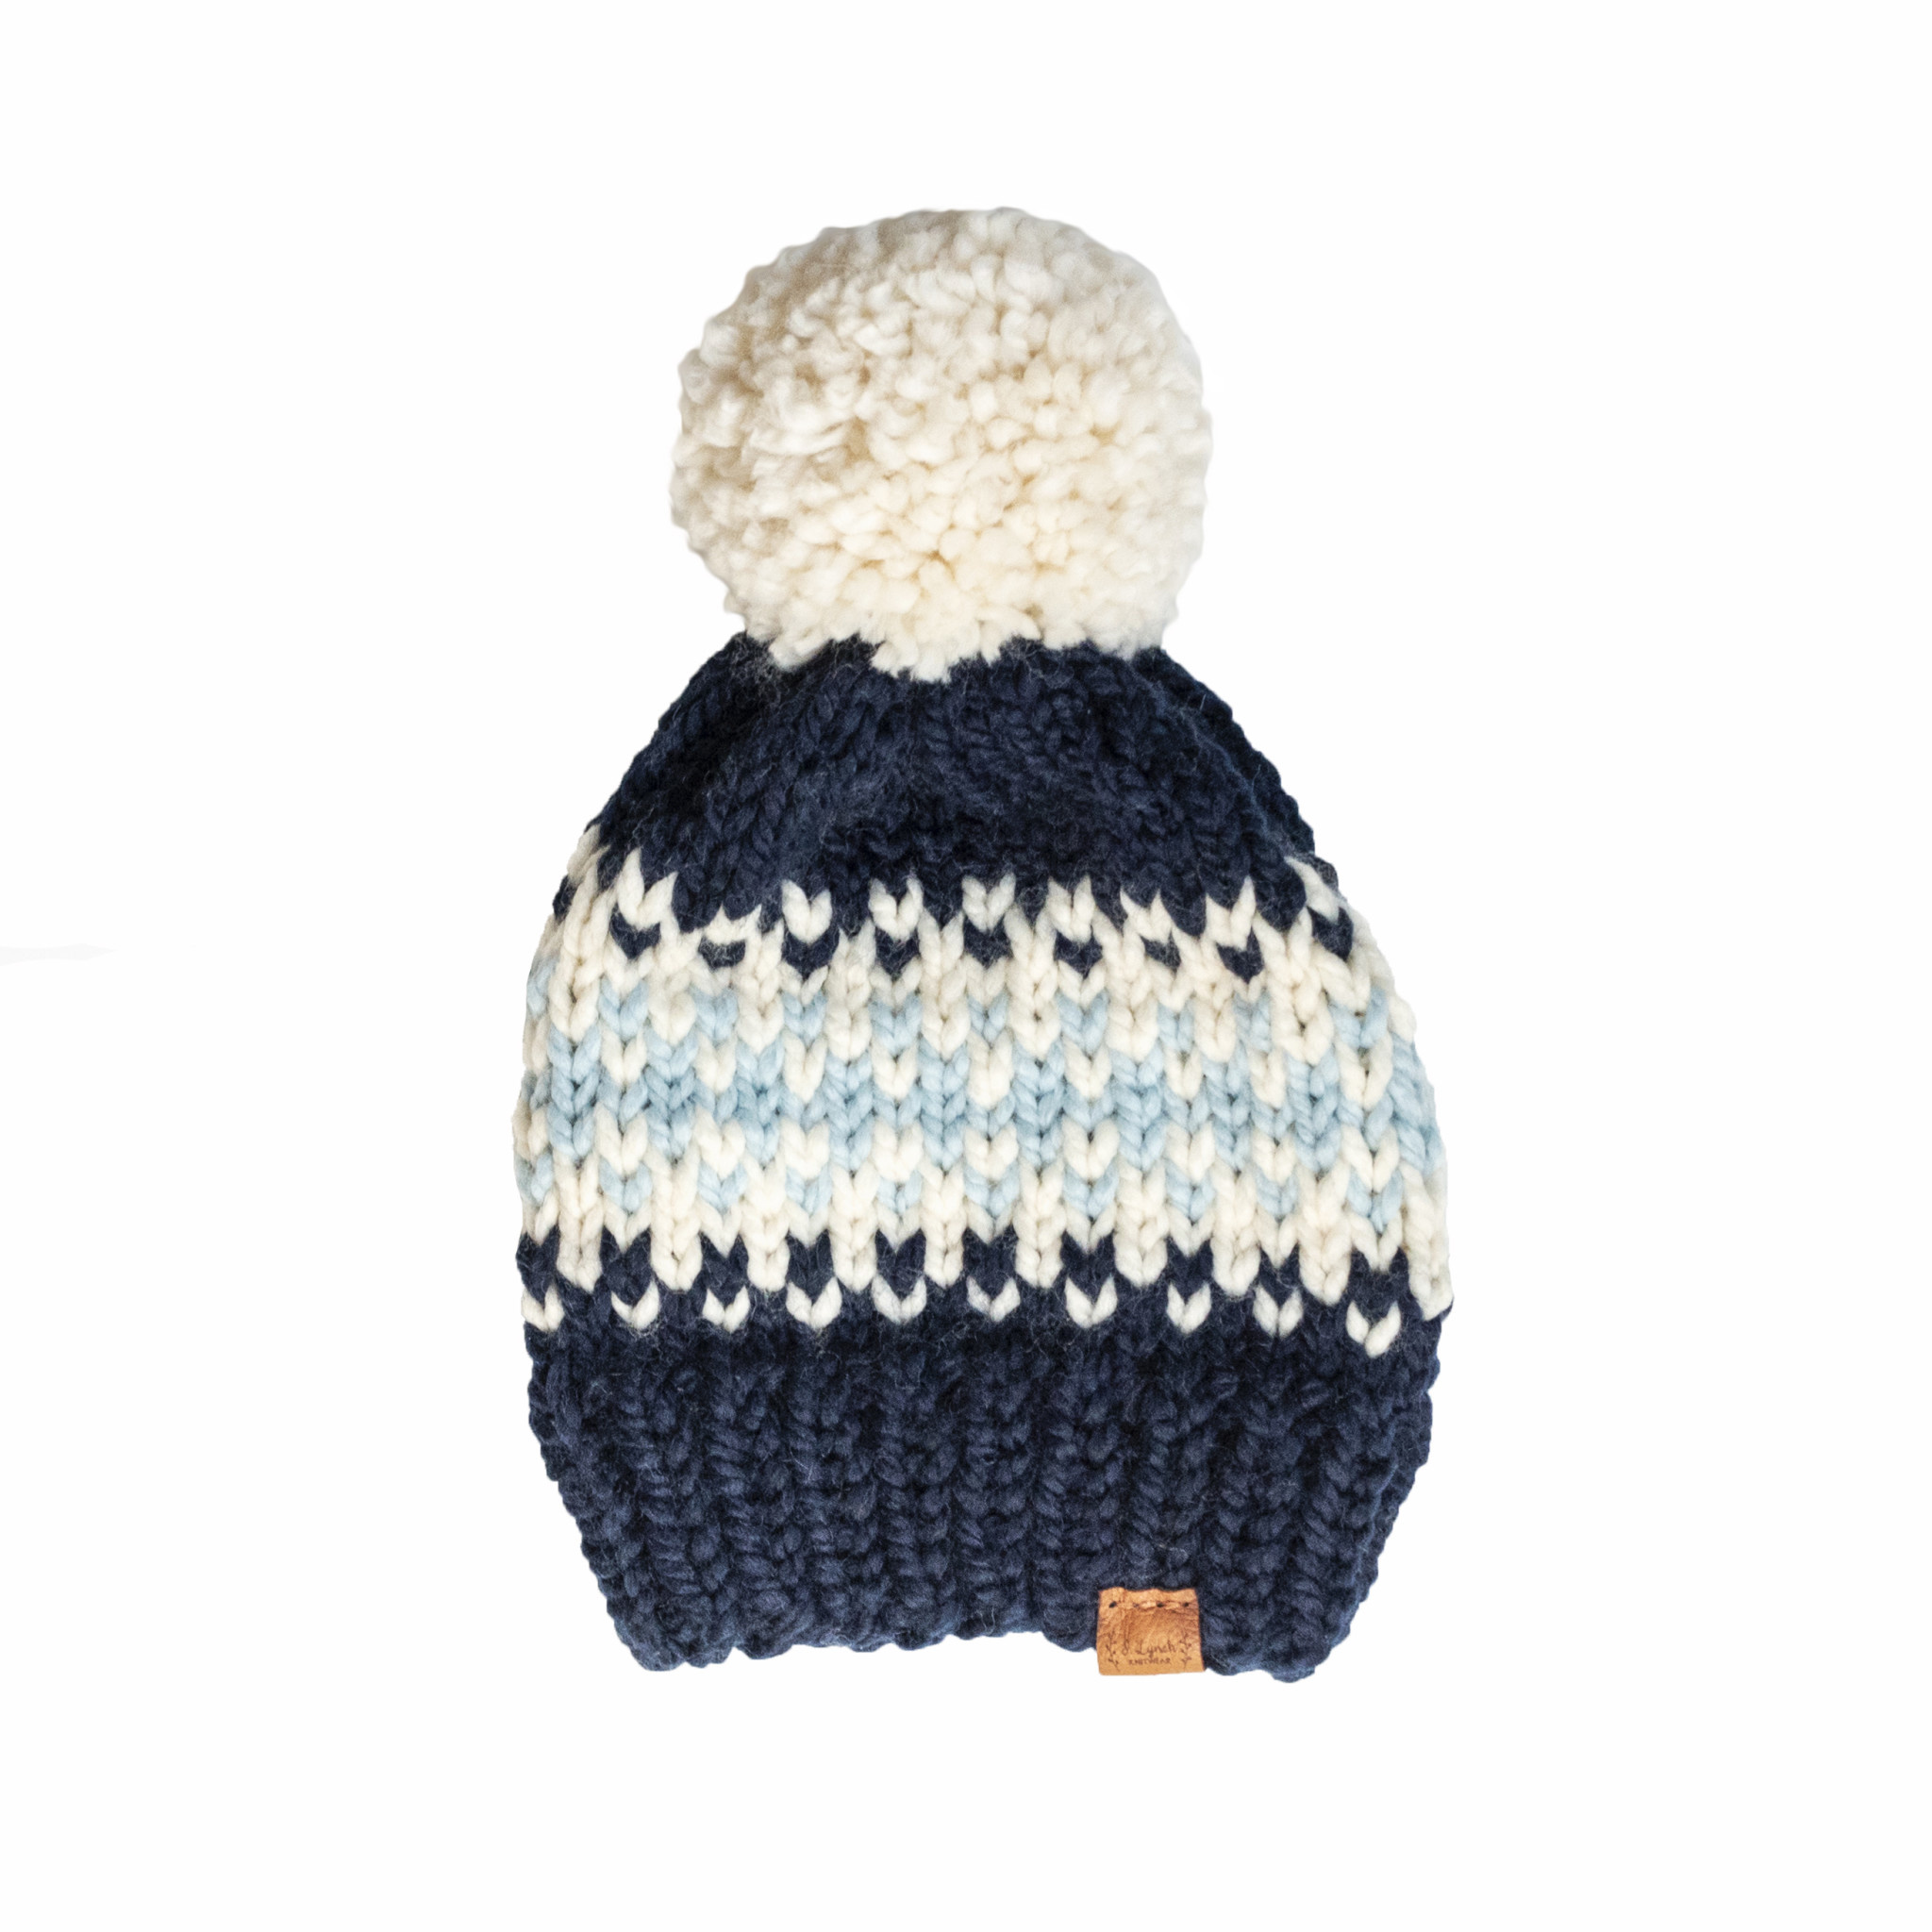 S. Lynch Knitwear S. Lynch Knitwear Adult Hat - Daytrip Custom Navy Light Blue